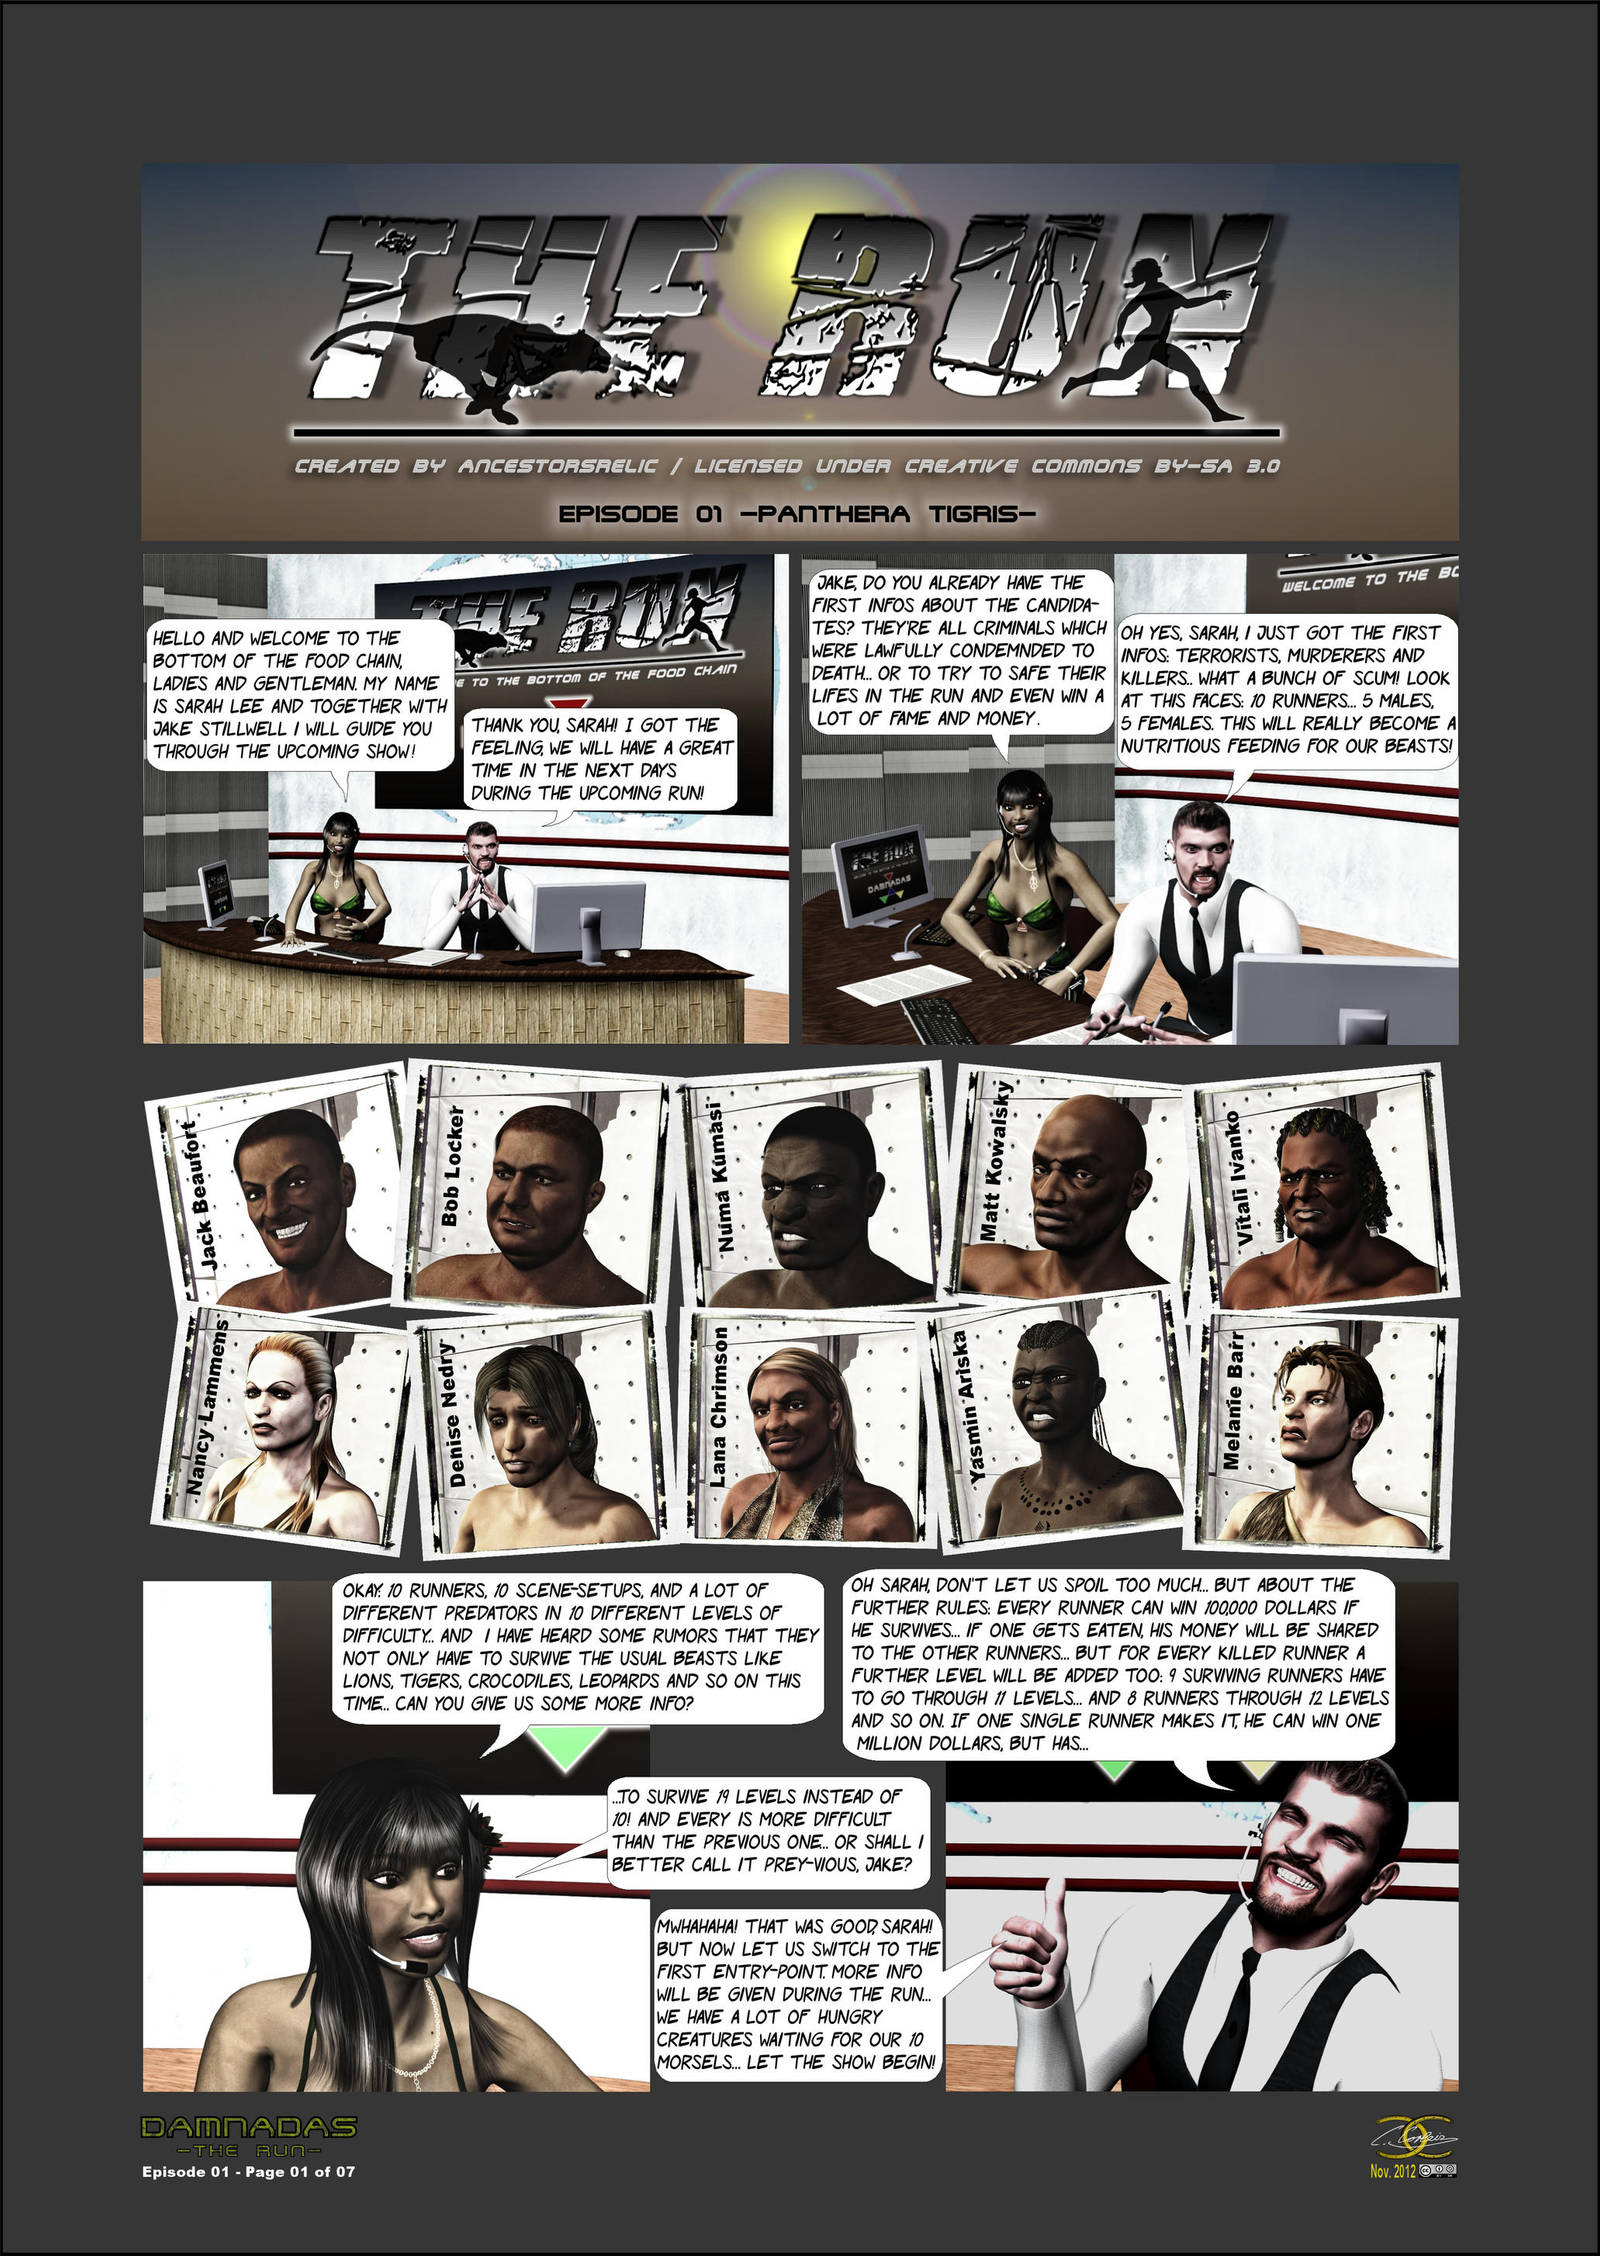 DAMNADAS -The Run- / Episode 01, Page 01 of 07 by ...